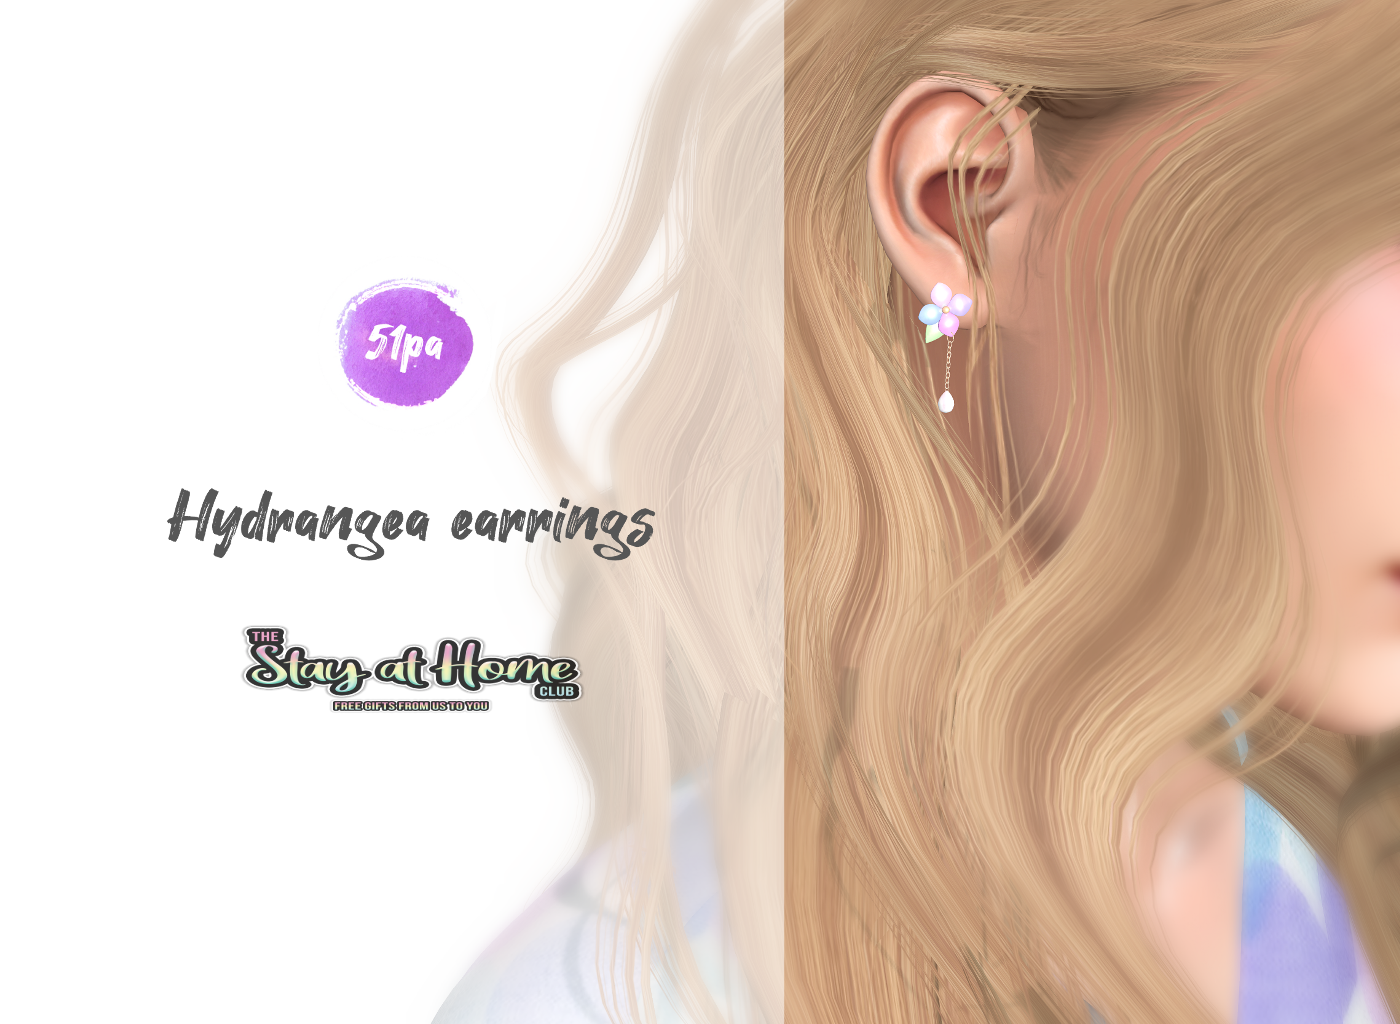 51pa - Hydrangea Earrings